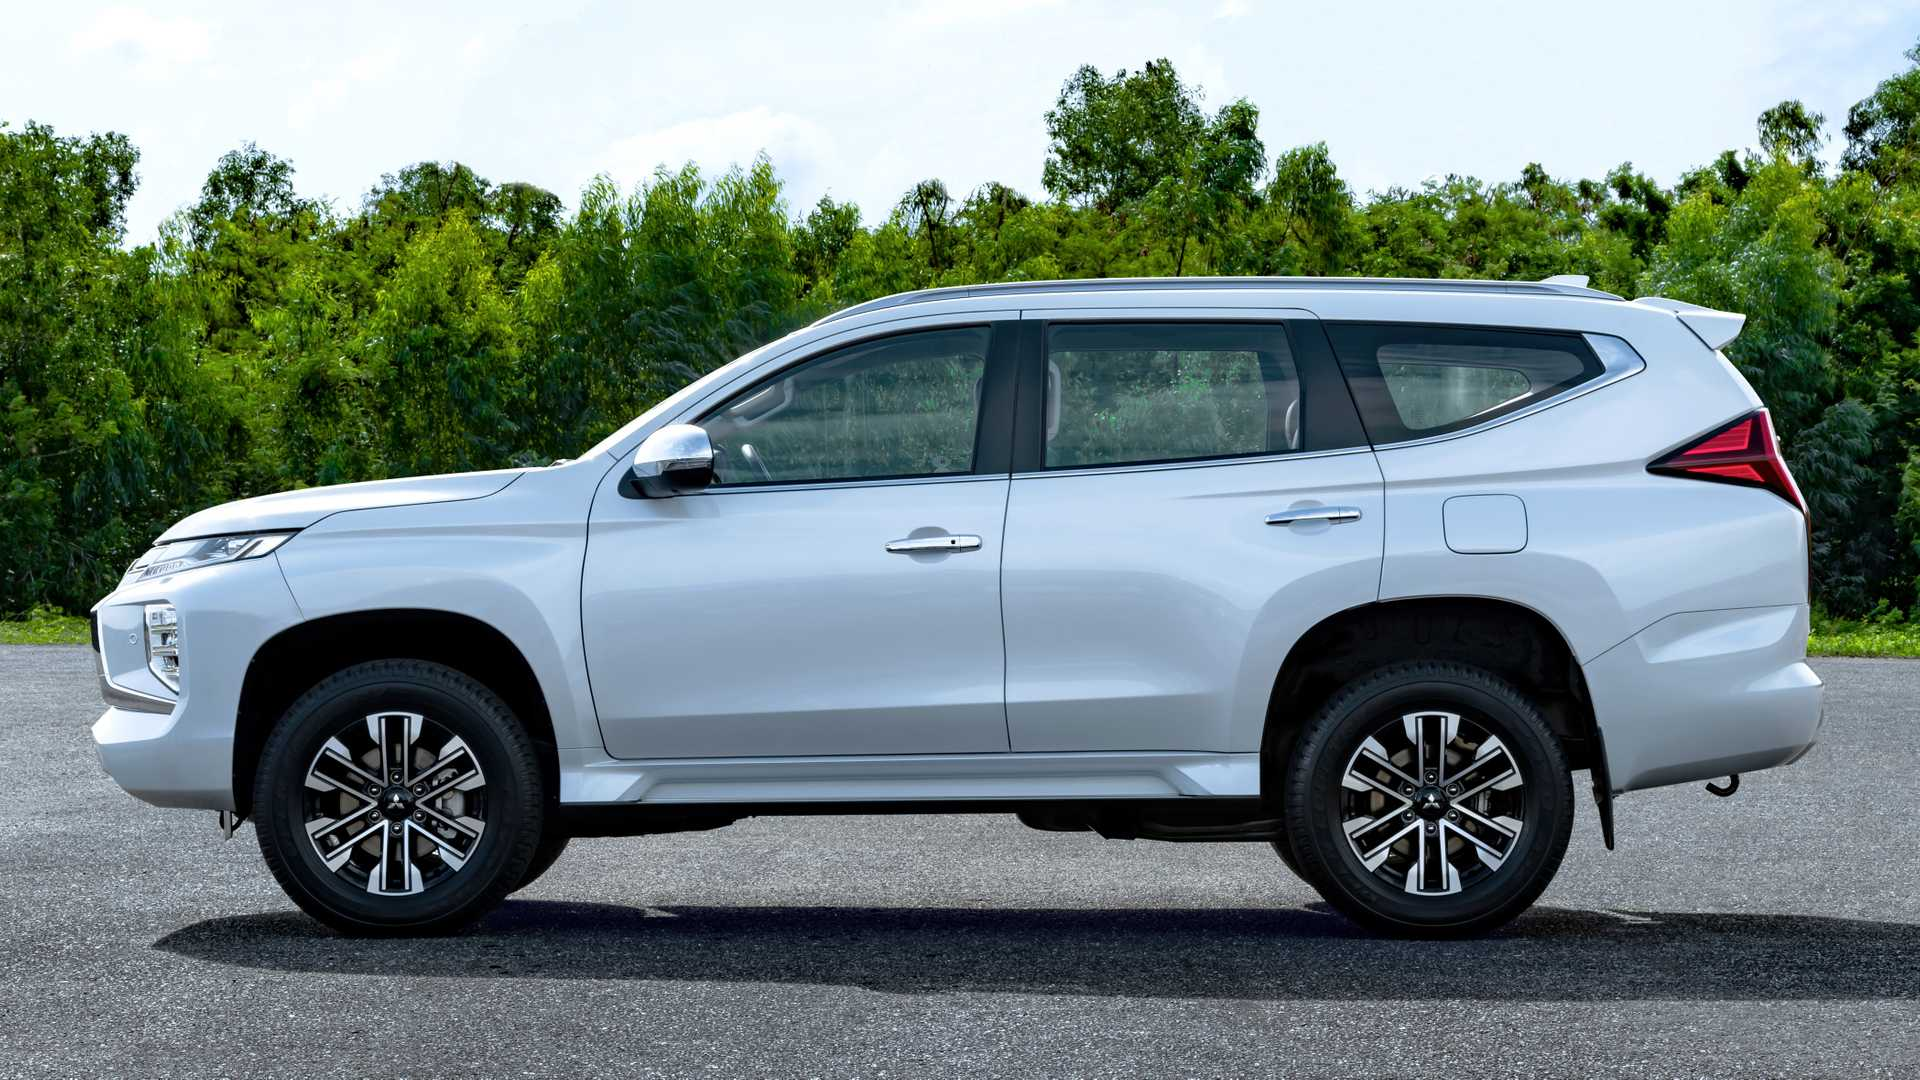 2020 Mitsubishi Pajero Specs and Review